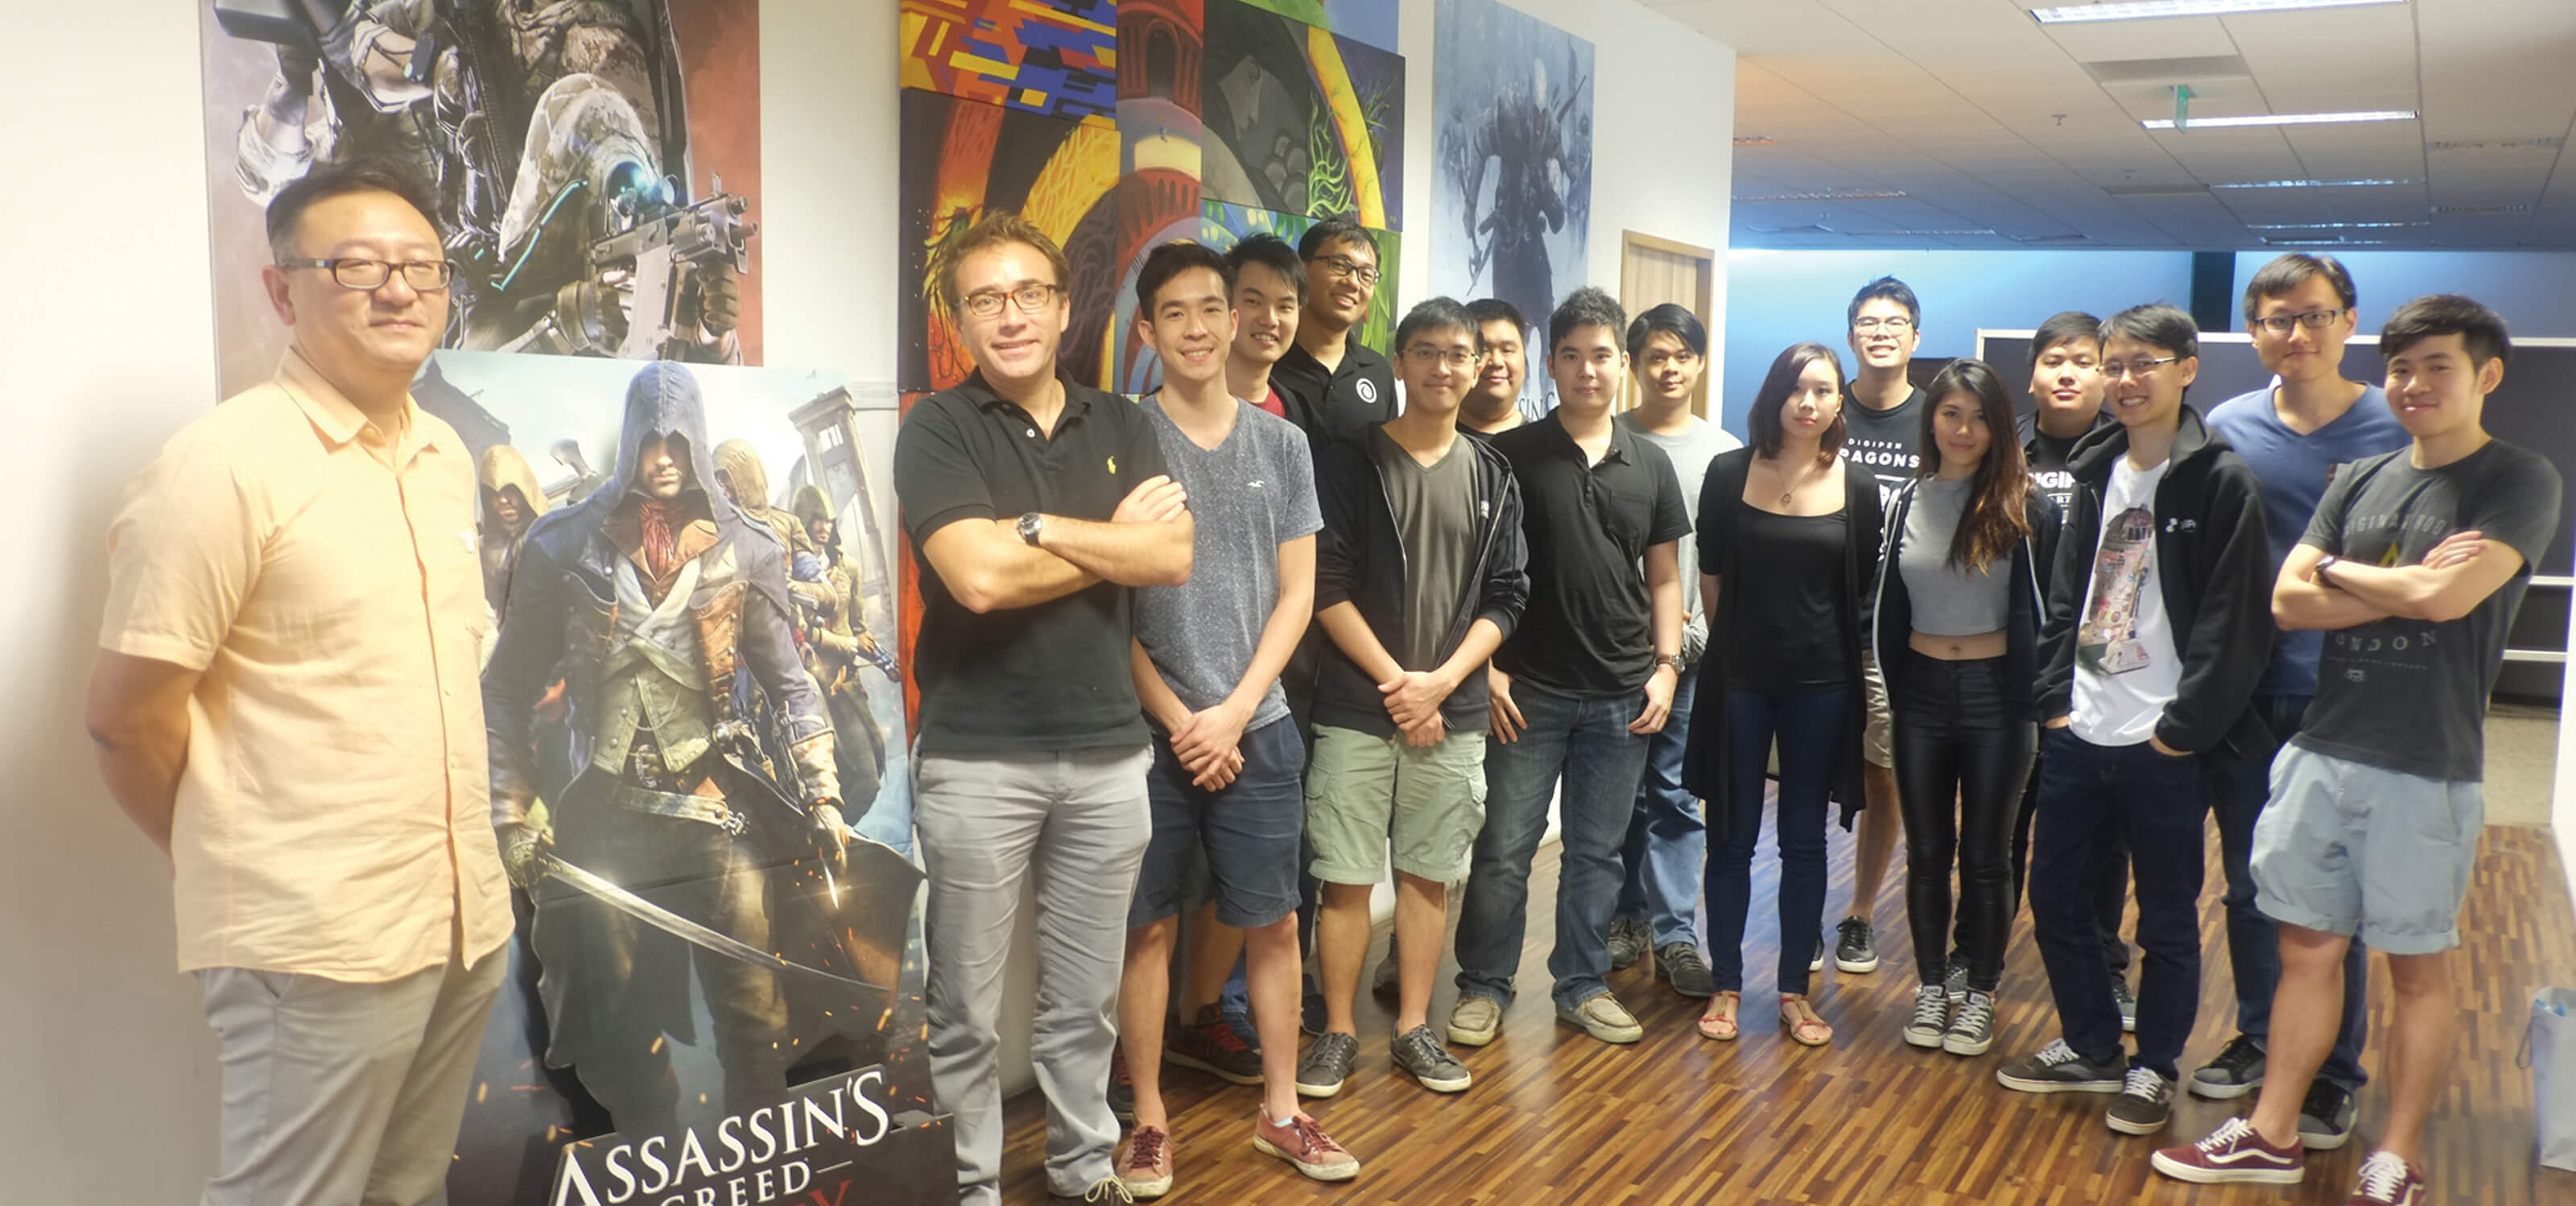 DigiPen students stand in lobby of Ubisoft Singapore office next to a cardboard cutout of an Assassin's Unity character